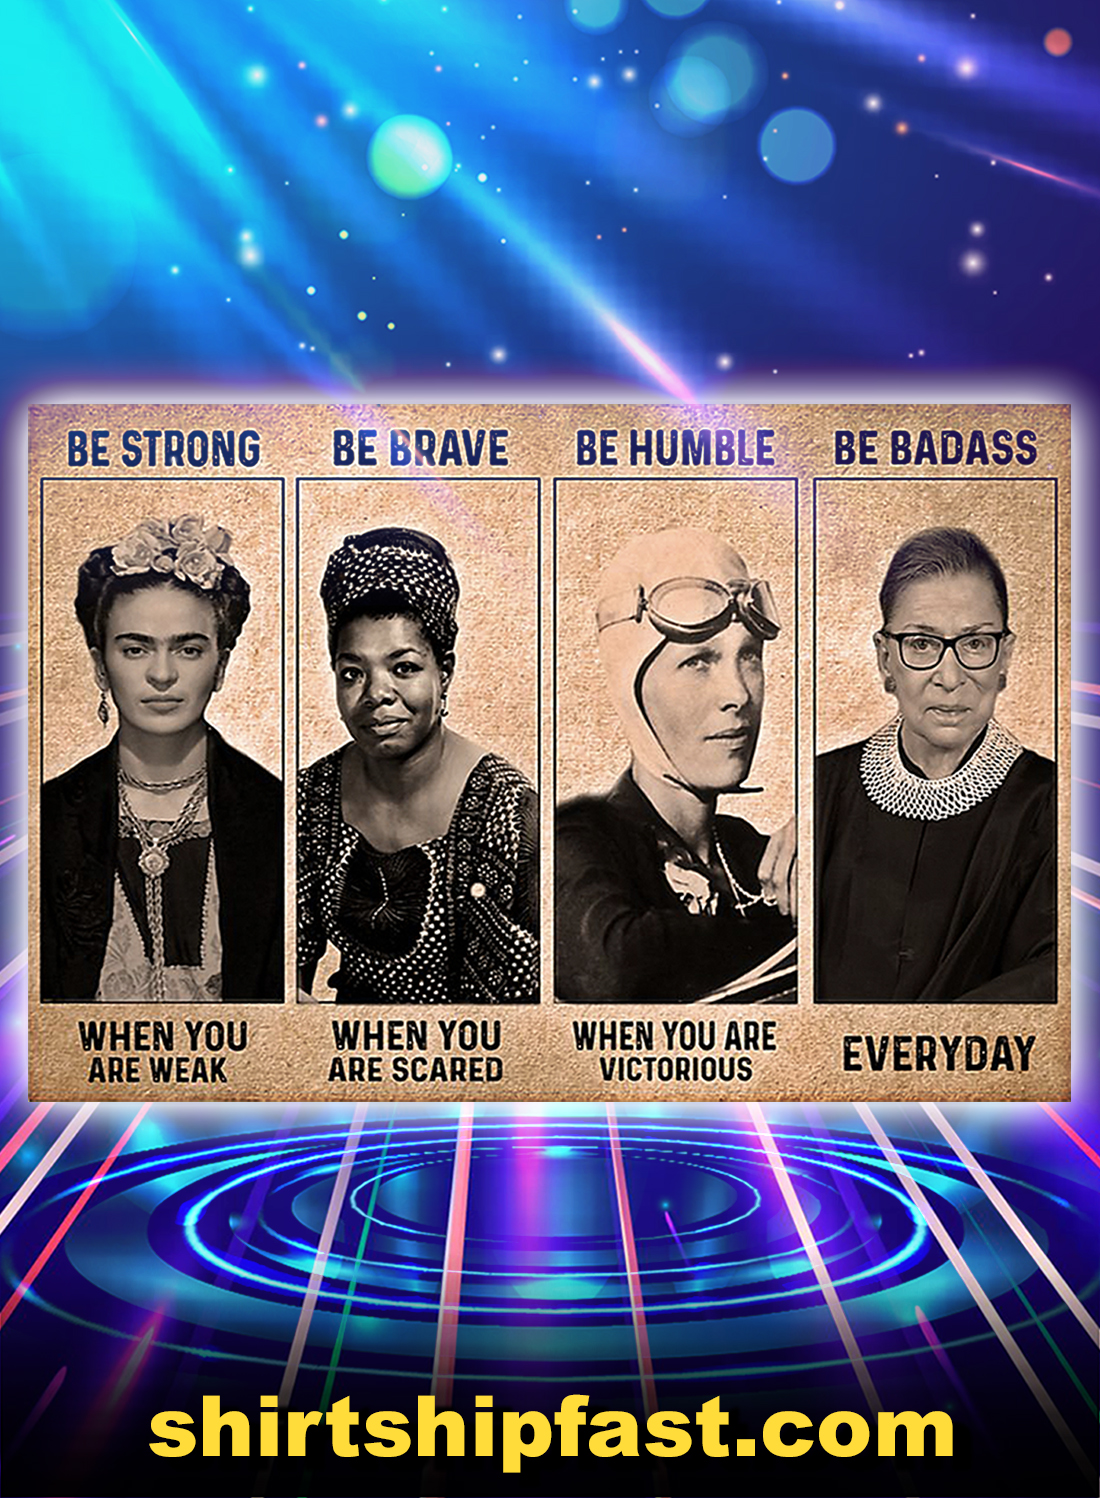 Frida kahlo and maya angelou feminist be strong be brave be humble be badass poster - A4